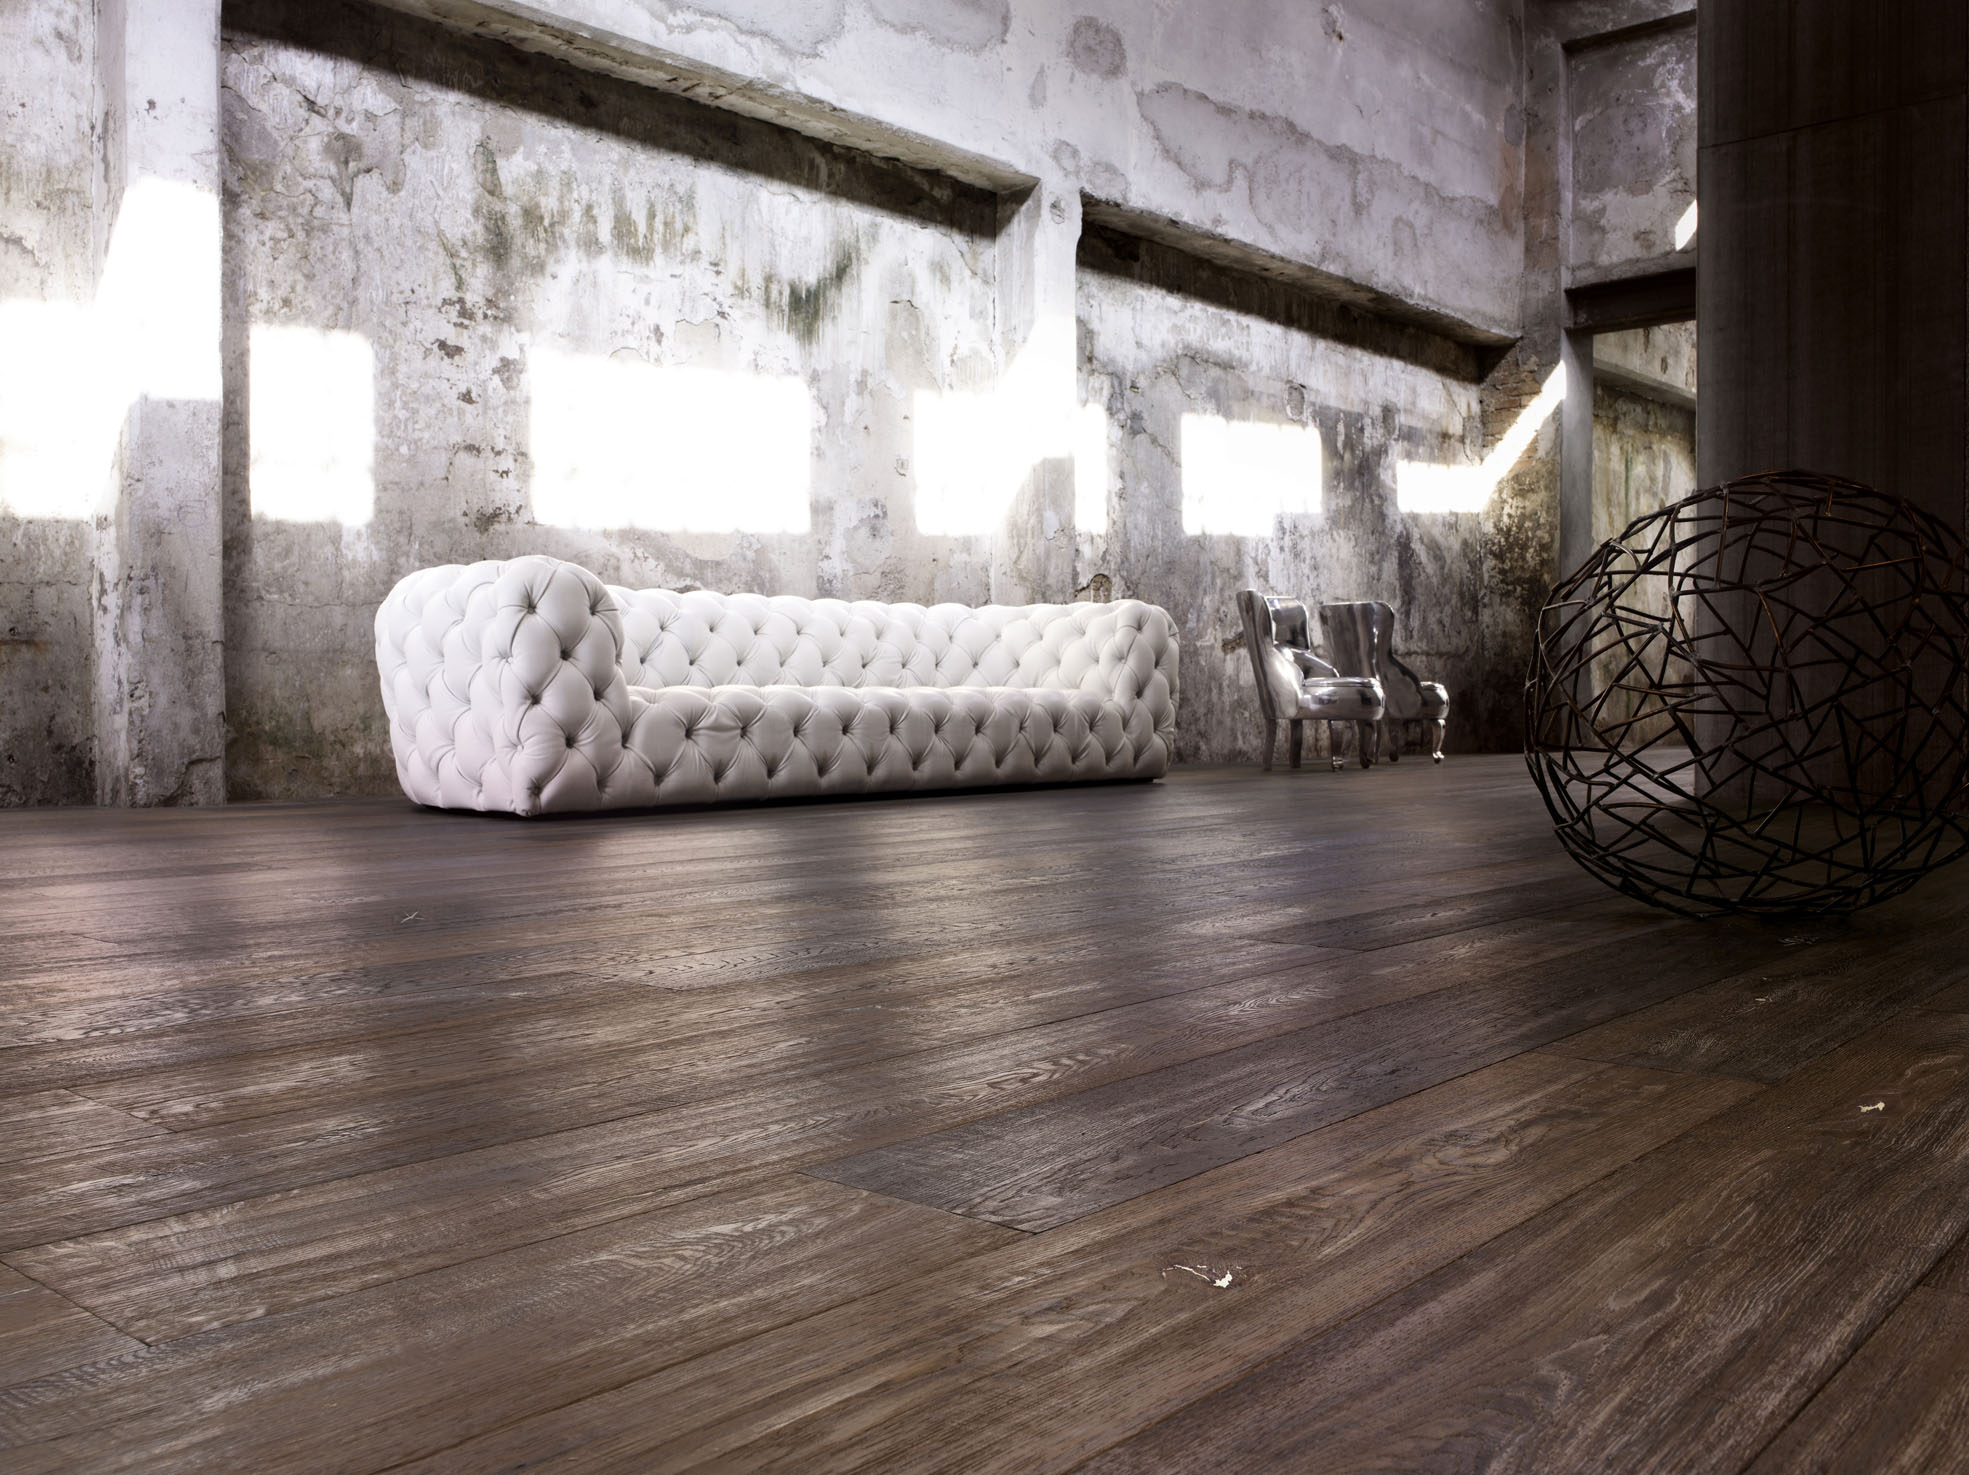 Outlet Listone Giordano. Mood Natural Wood With Outlet Listone ...